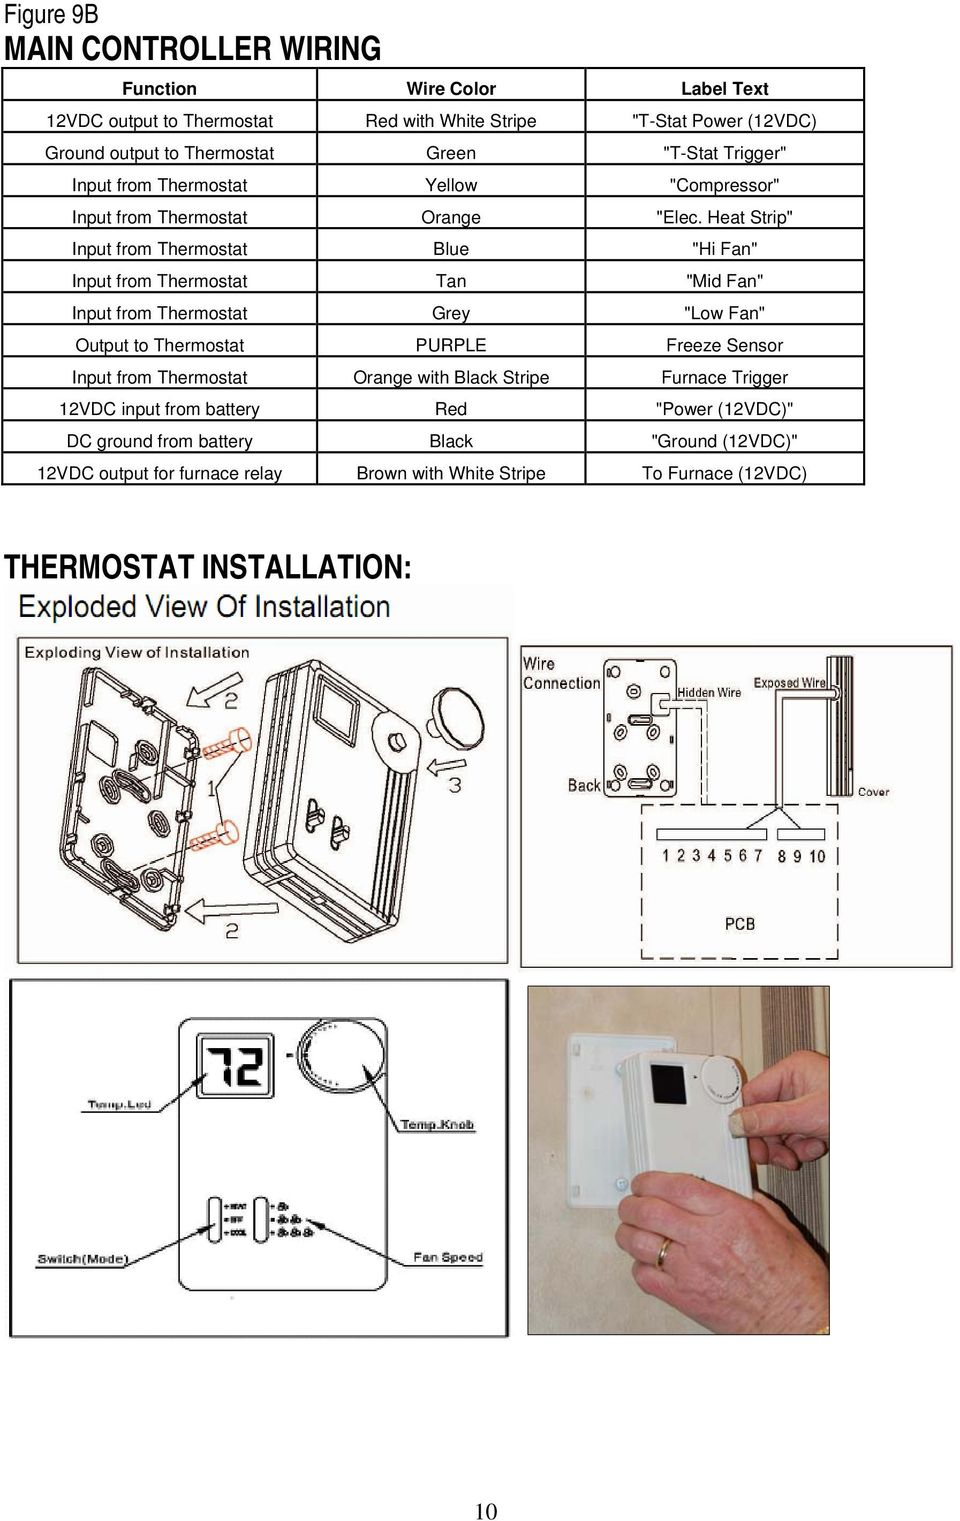 Roof Top Air Conditioner Installation And Operating Instructions Pdf Furnace Blower Wiring Diagram Heat Strip Input From Thermostat Blue Hi Fan Tan